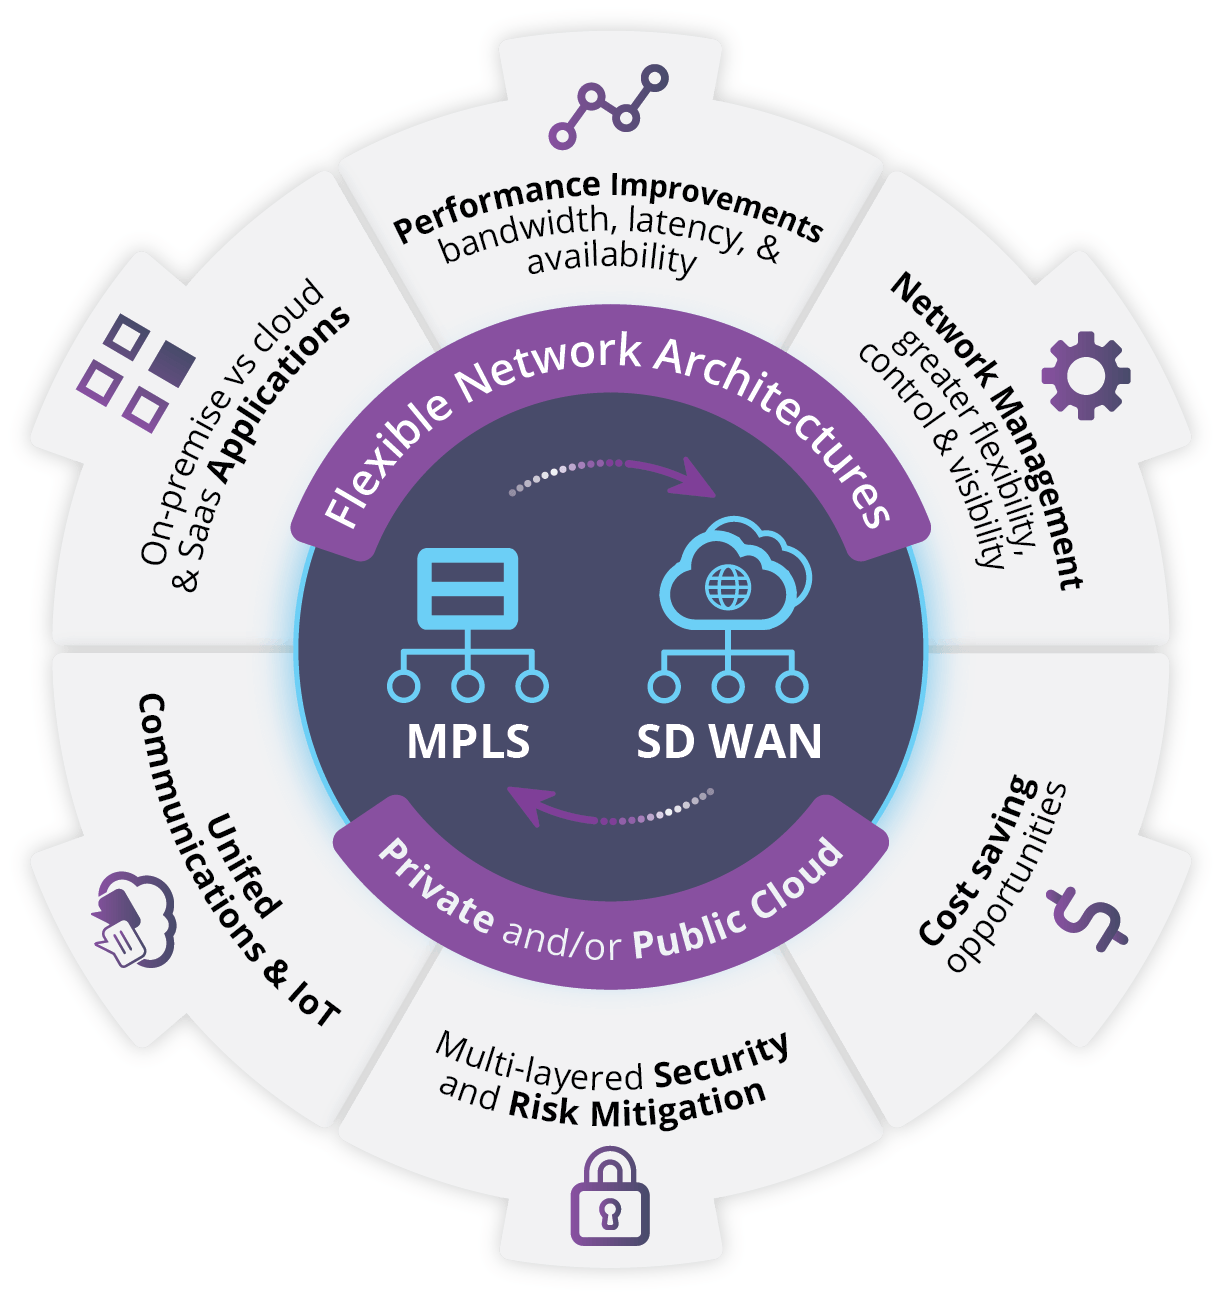 MPLS and SD WAN